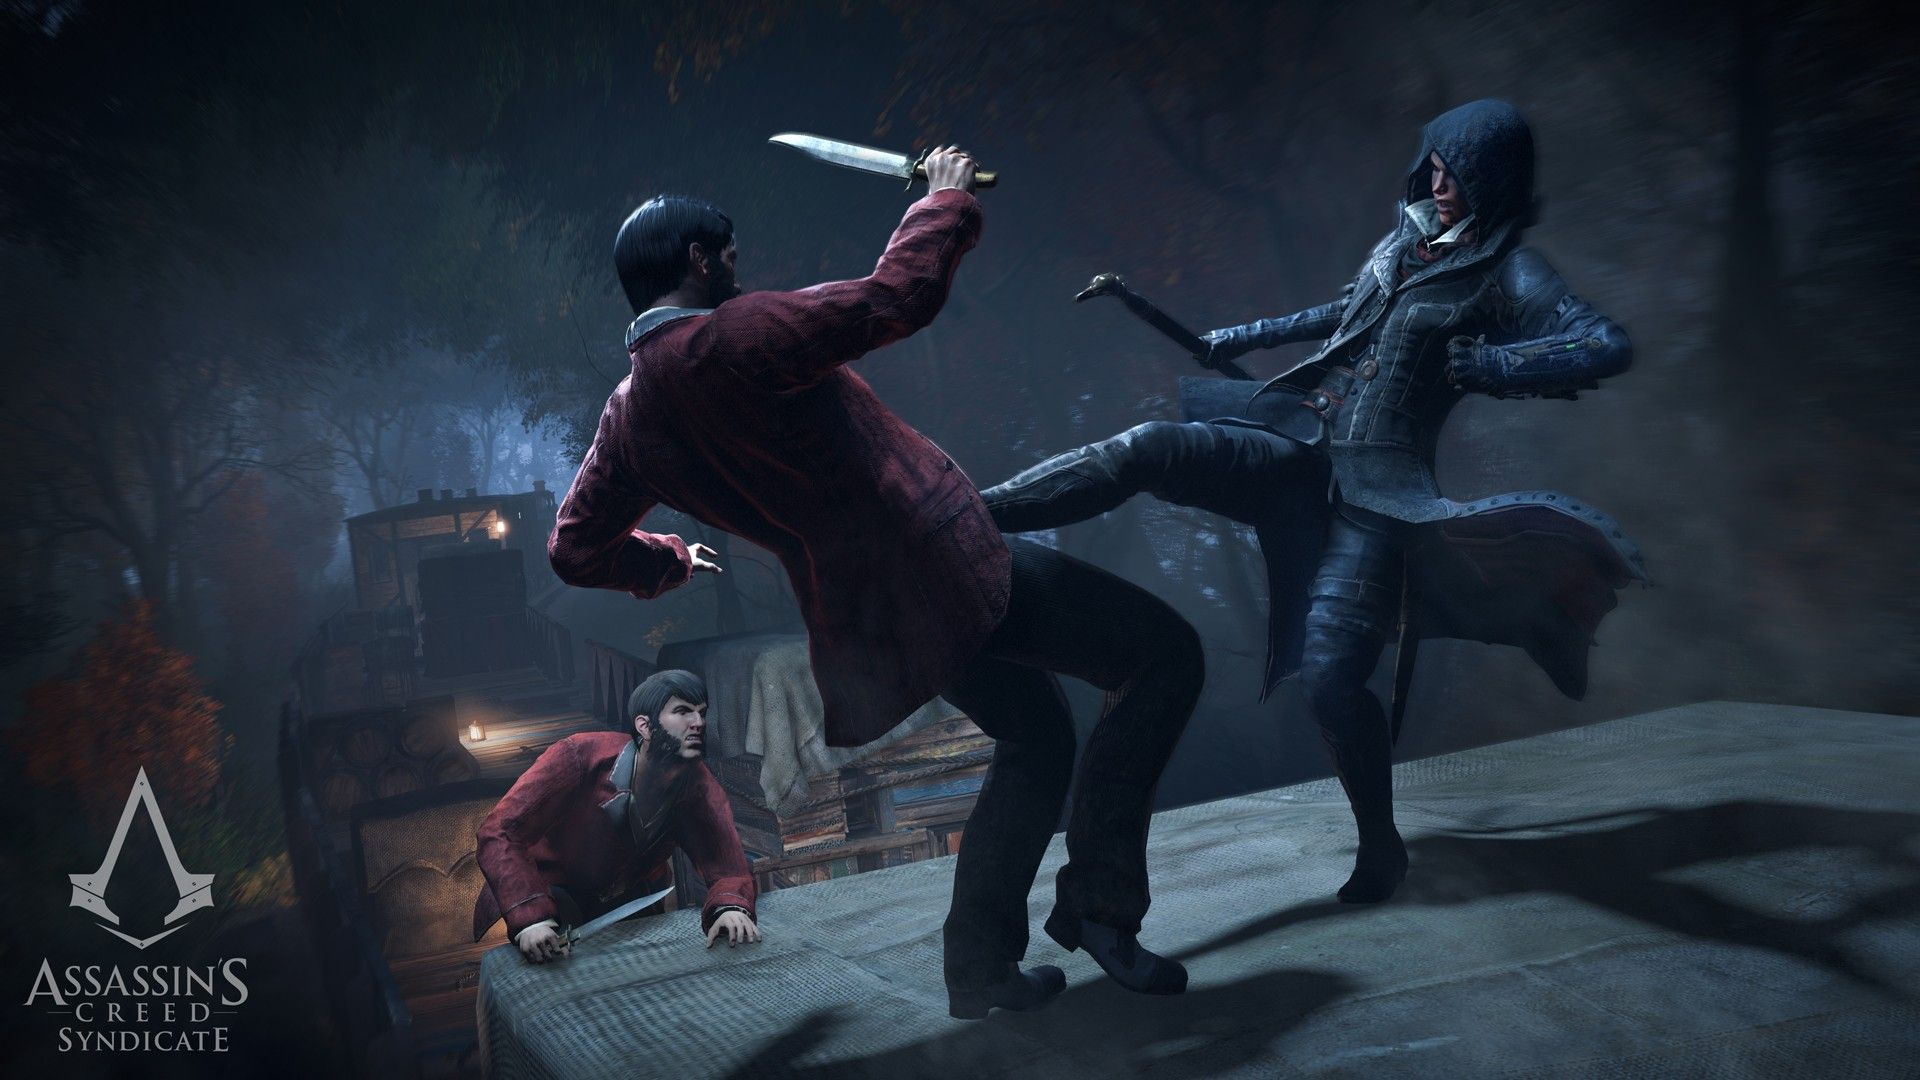 Assassins Creed Syndicate Hd Wallpapers Backgrounds Wallpapers